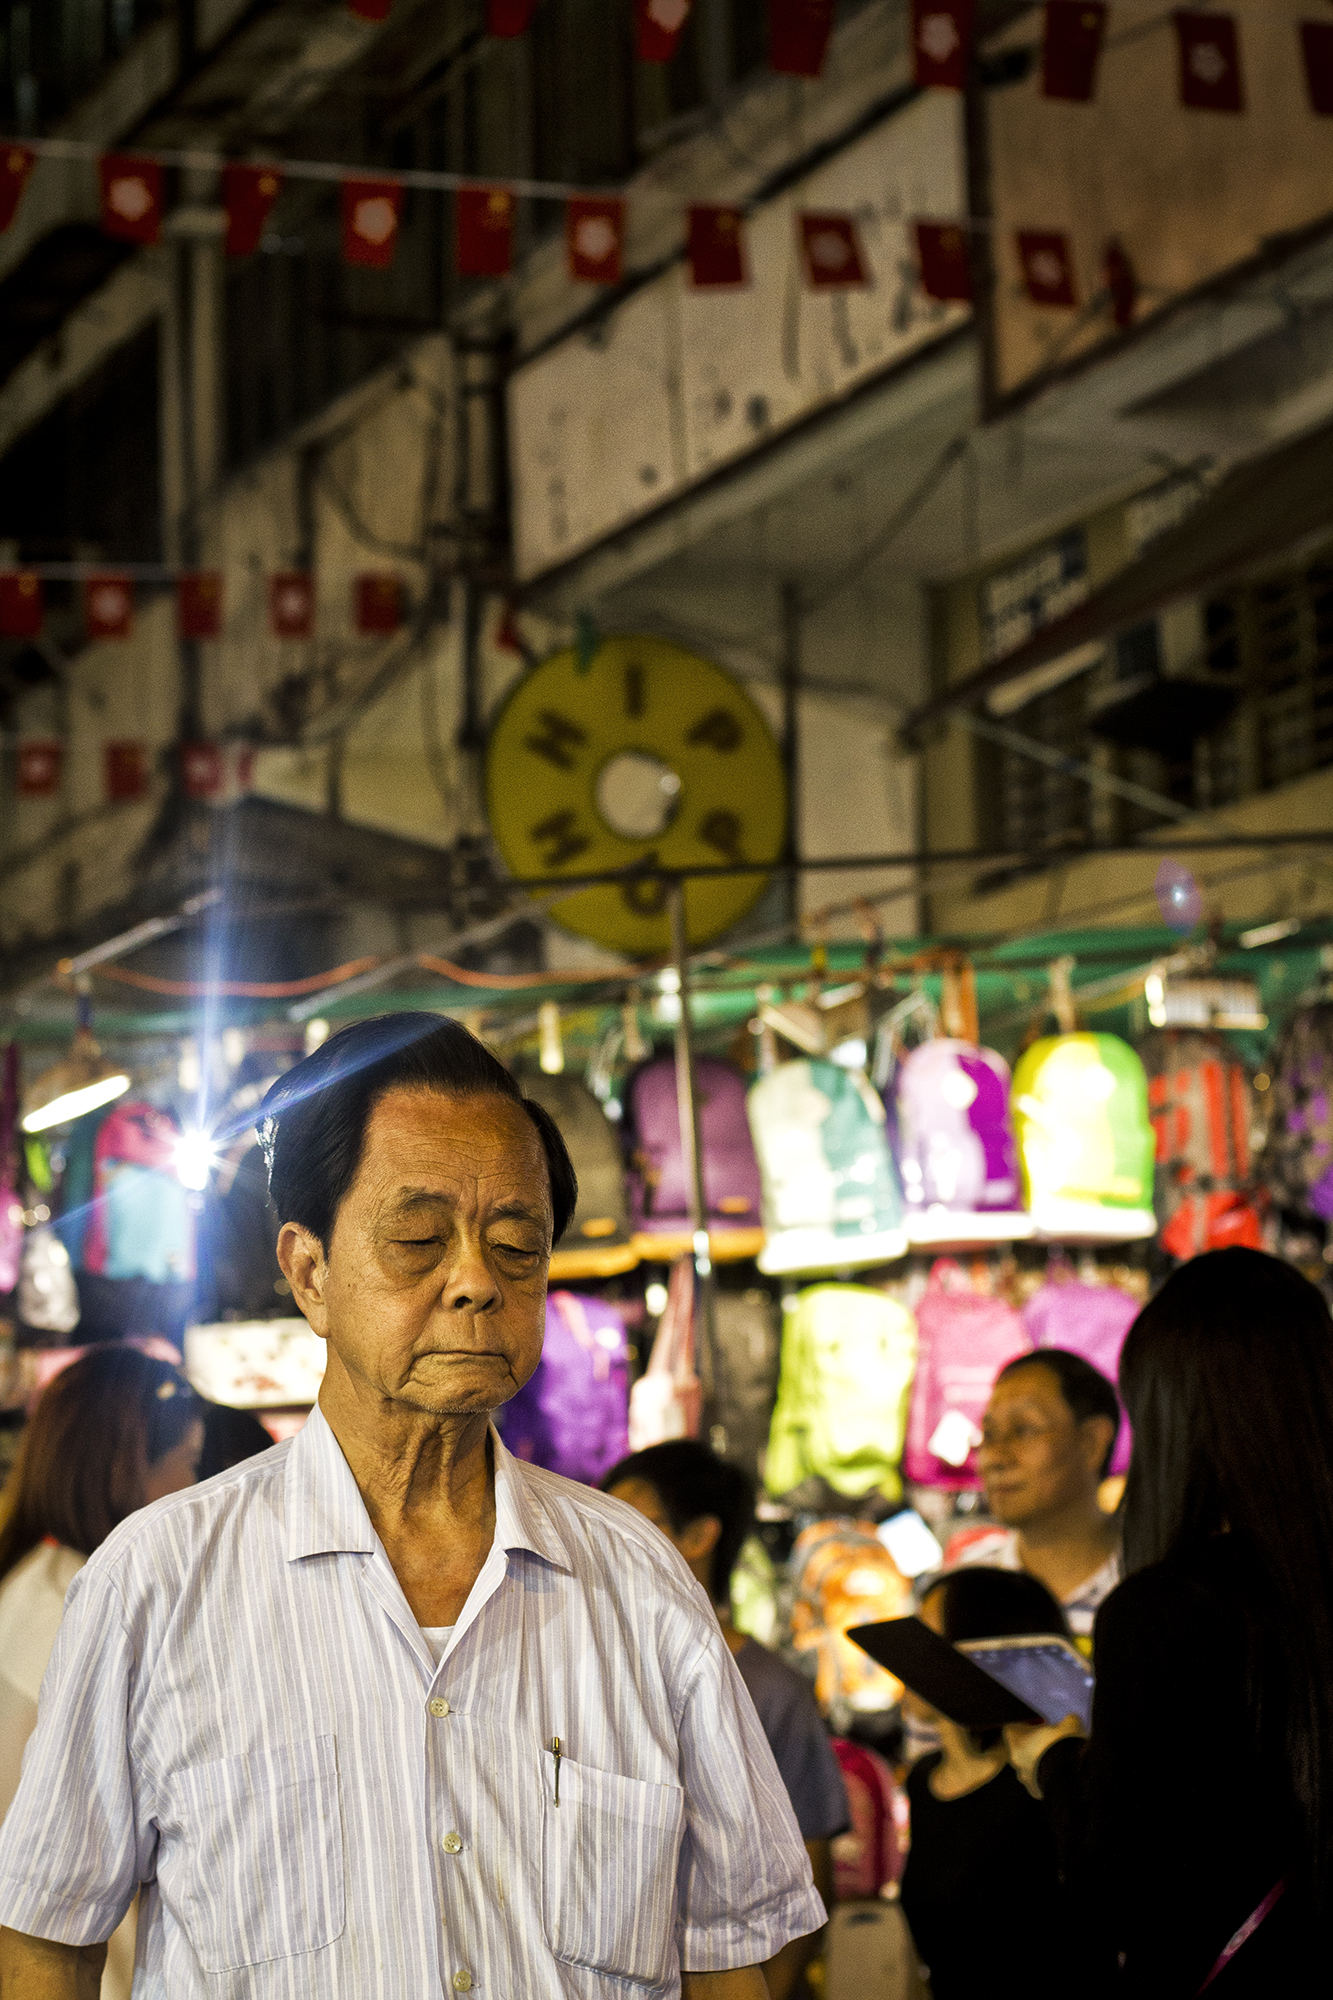 Hong kong man copy.jpg